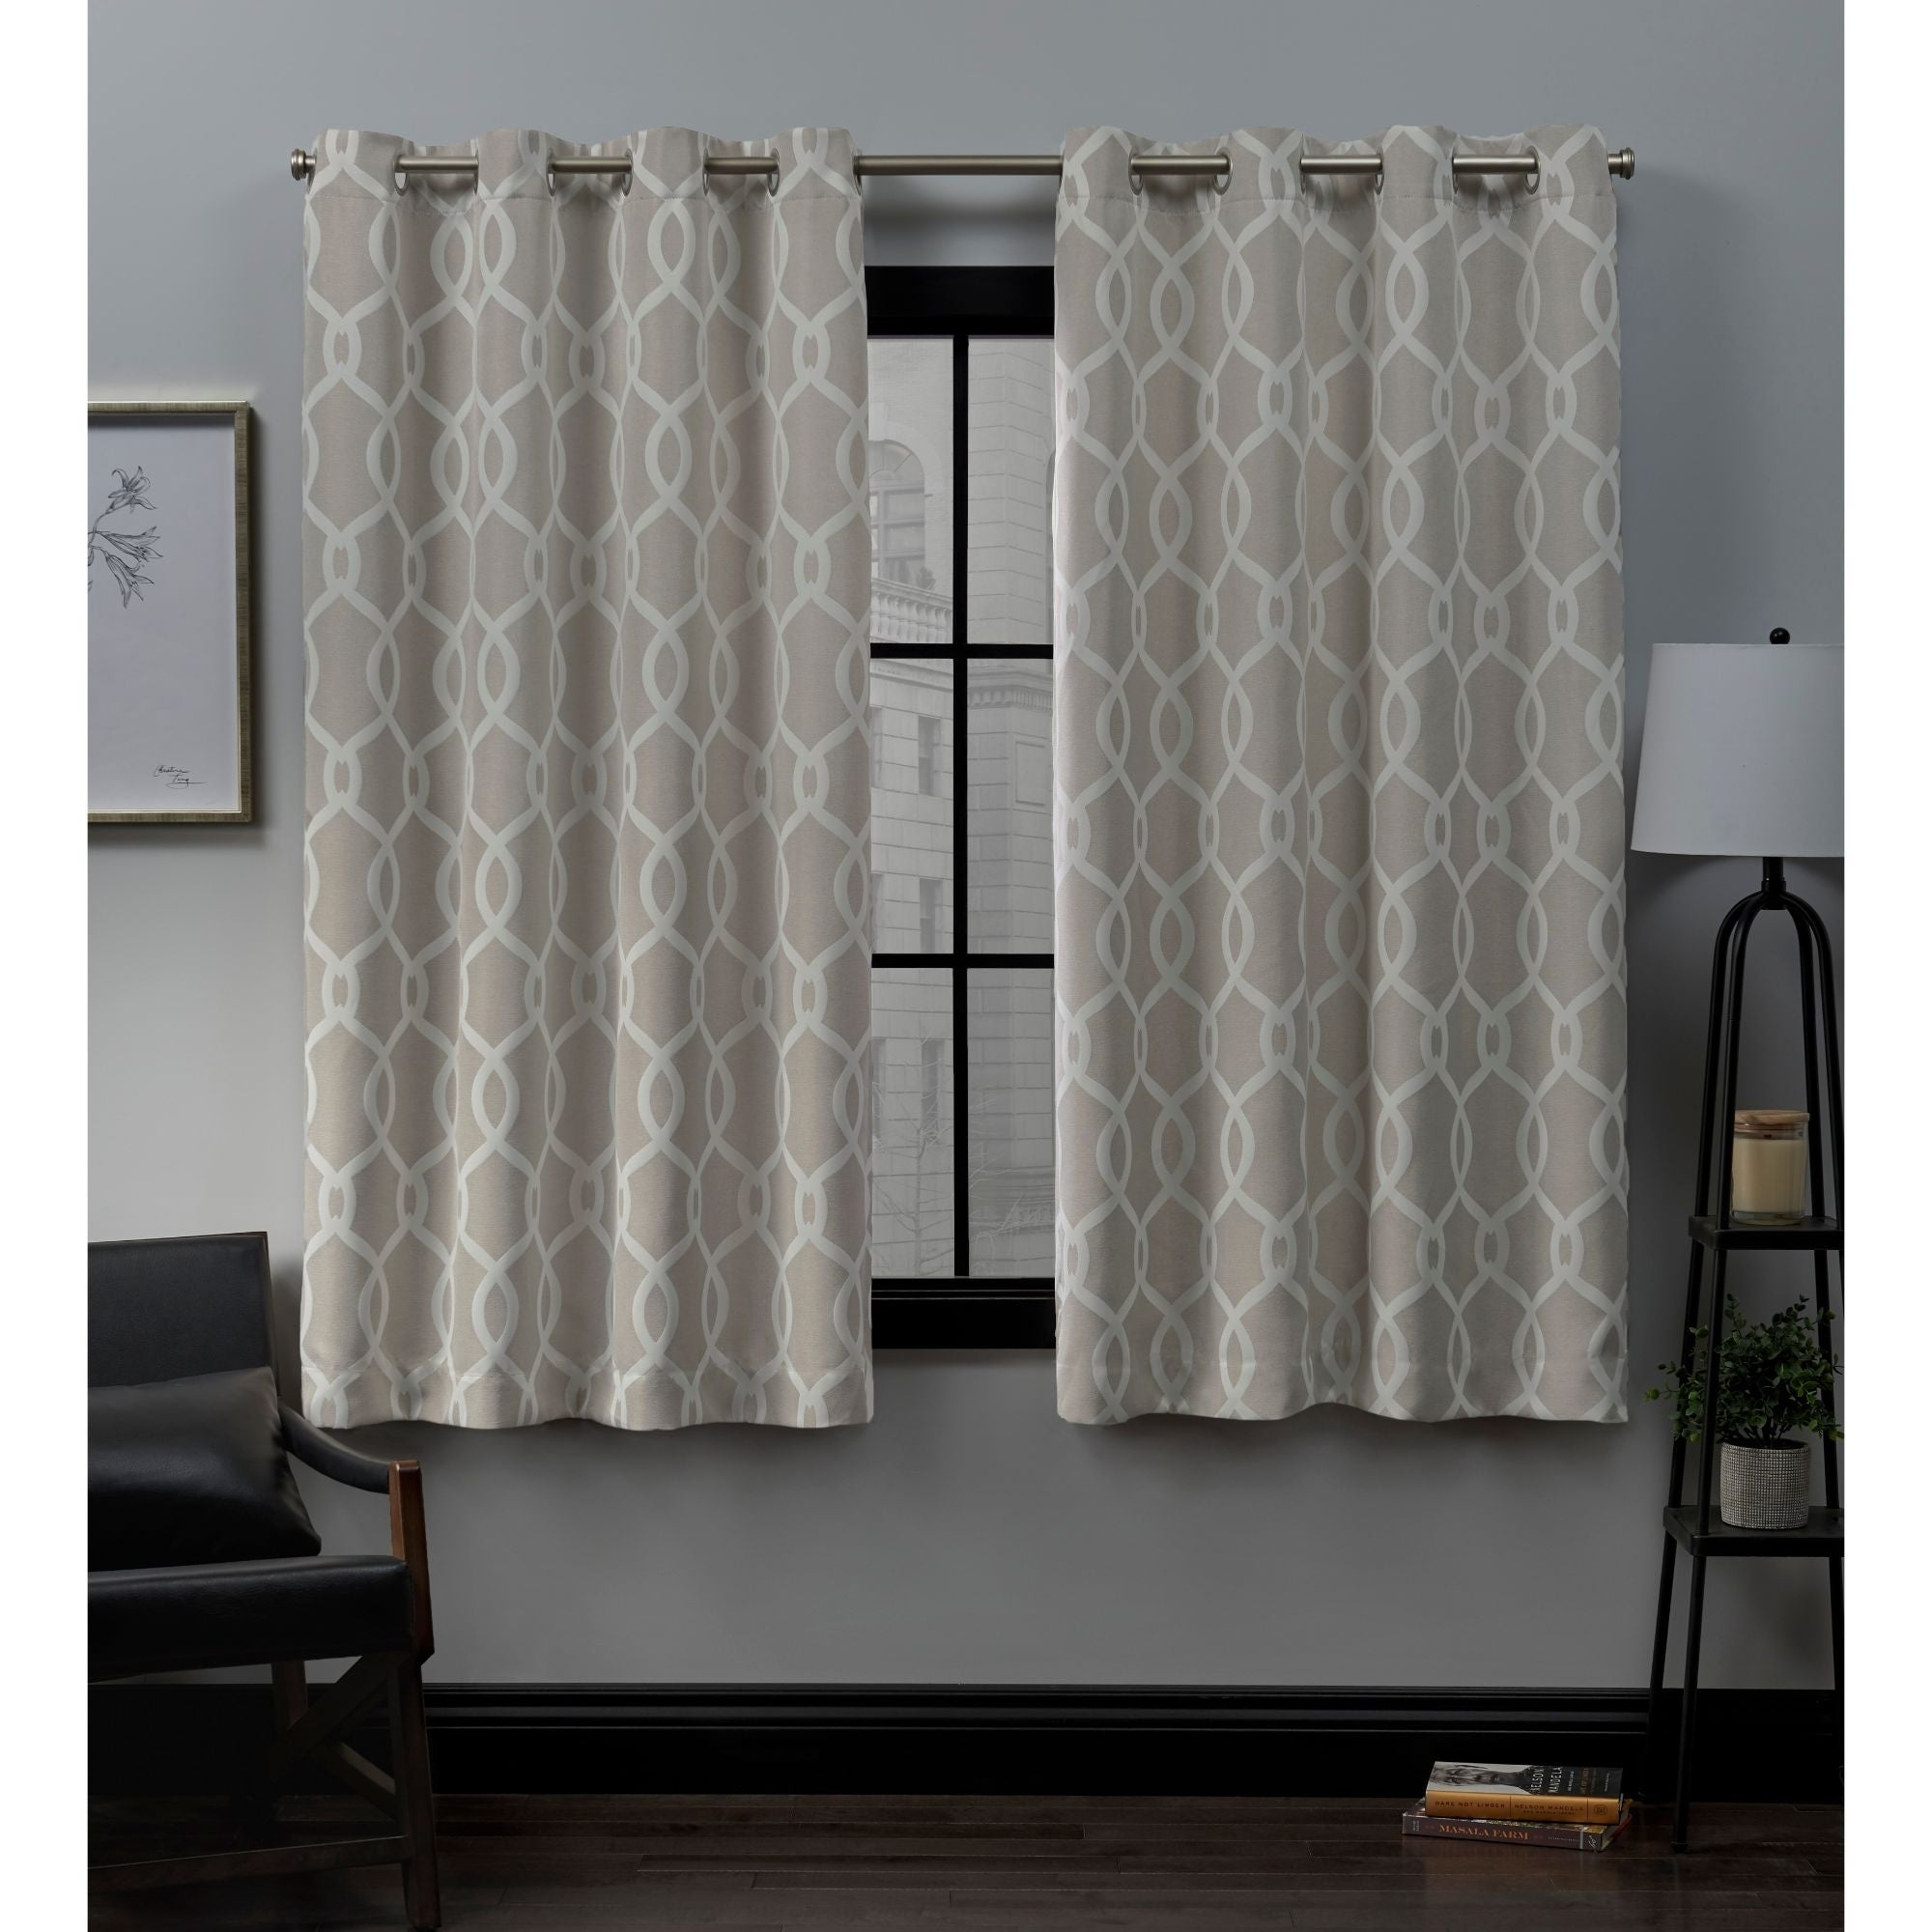 Ati Home Trilogi Woven Blackout Grommet Top Curtain Panel Pair Inside Forest Hill Woven Blackout Grommet Top Curtain Panel Pairs (View 4 of 20)